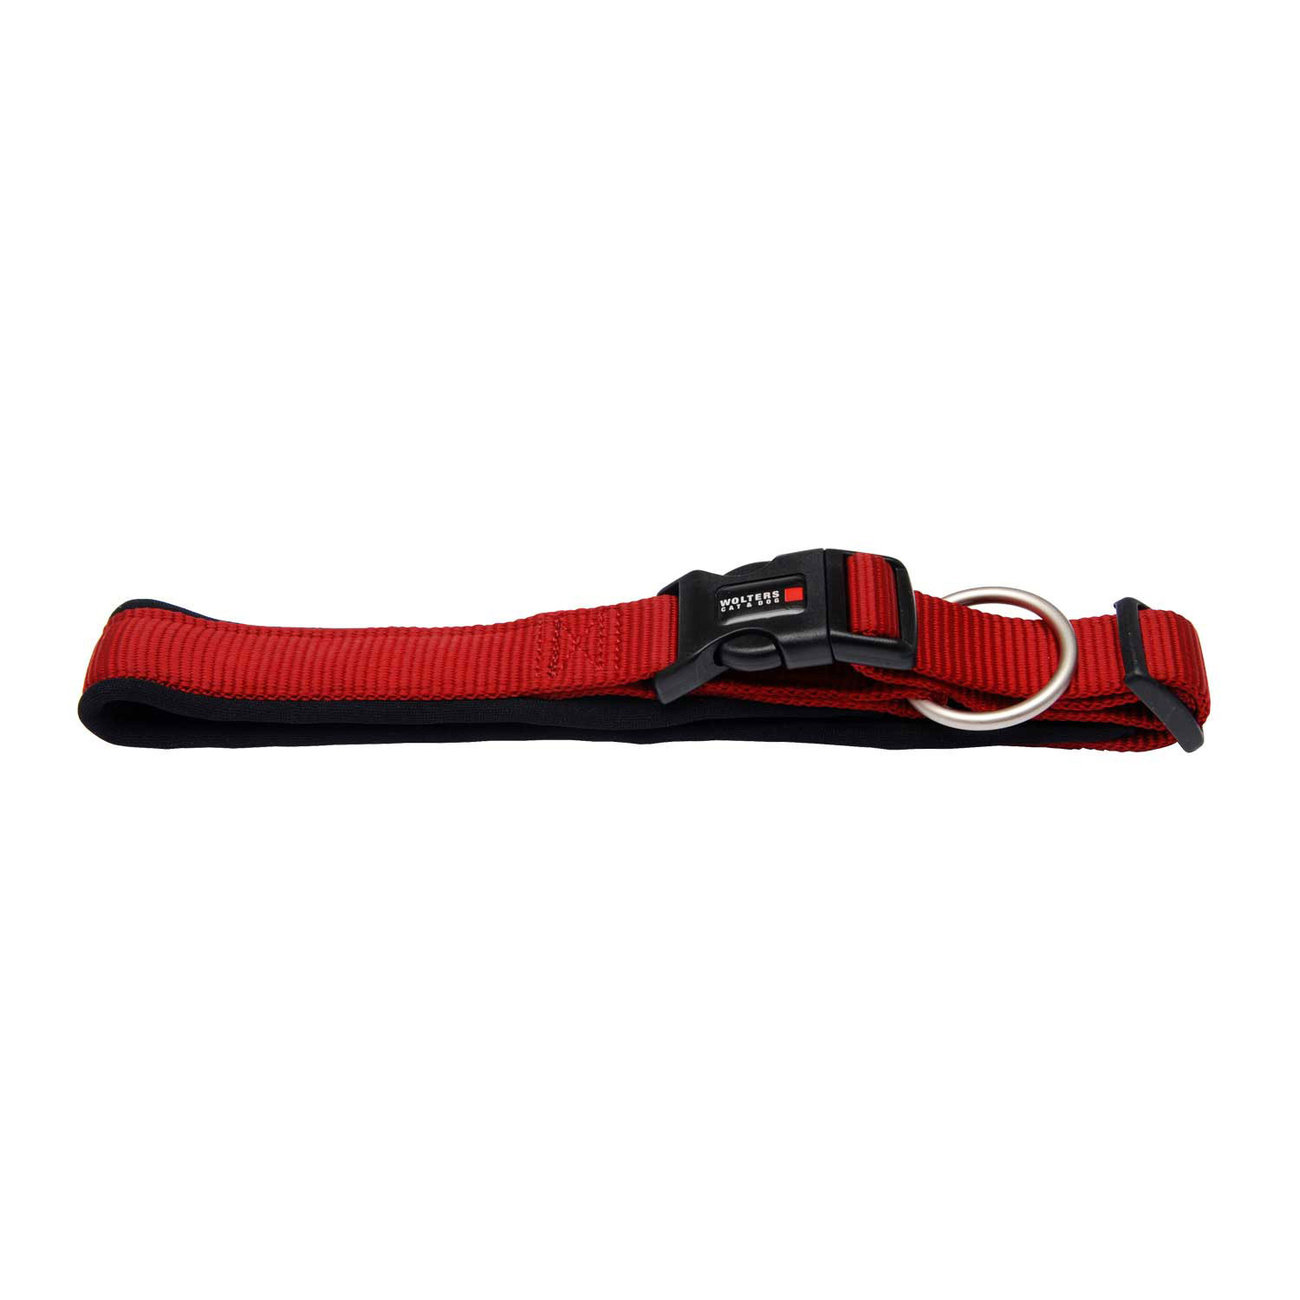 Wolters Halsband Professional Comfort, Bild 6